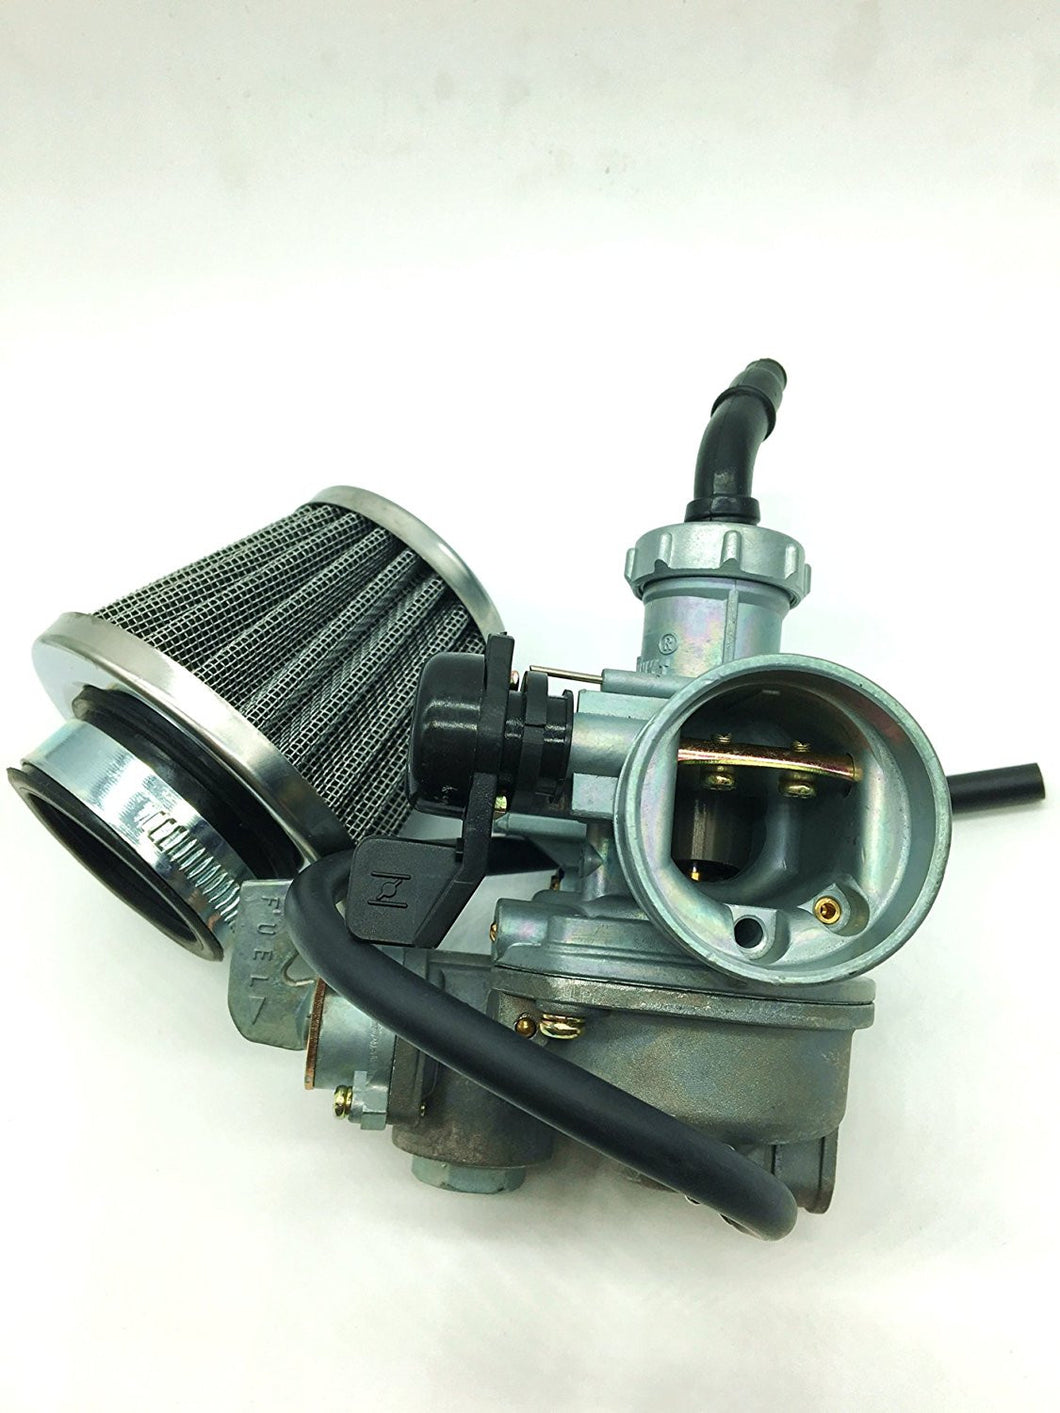 Carburetor Carb for Honda TRX90 TRX 90 Sportrax with Air Filter